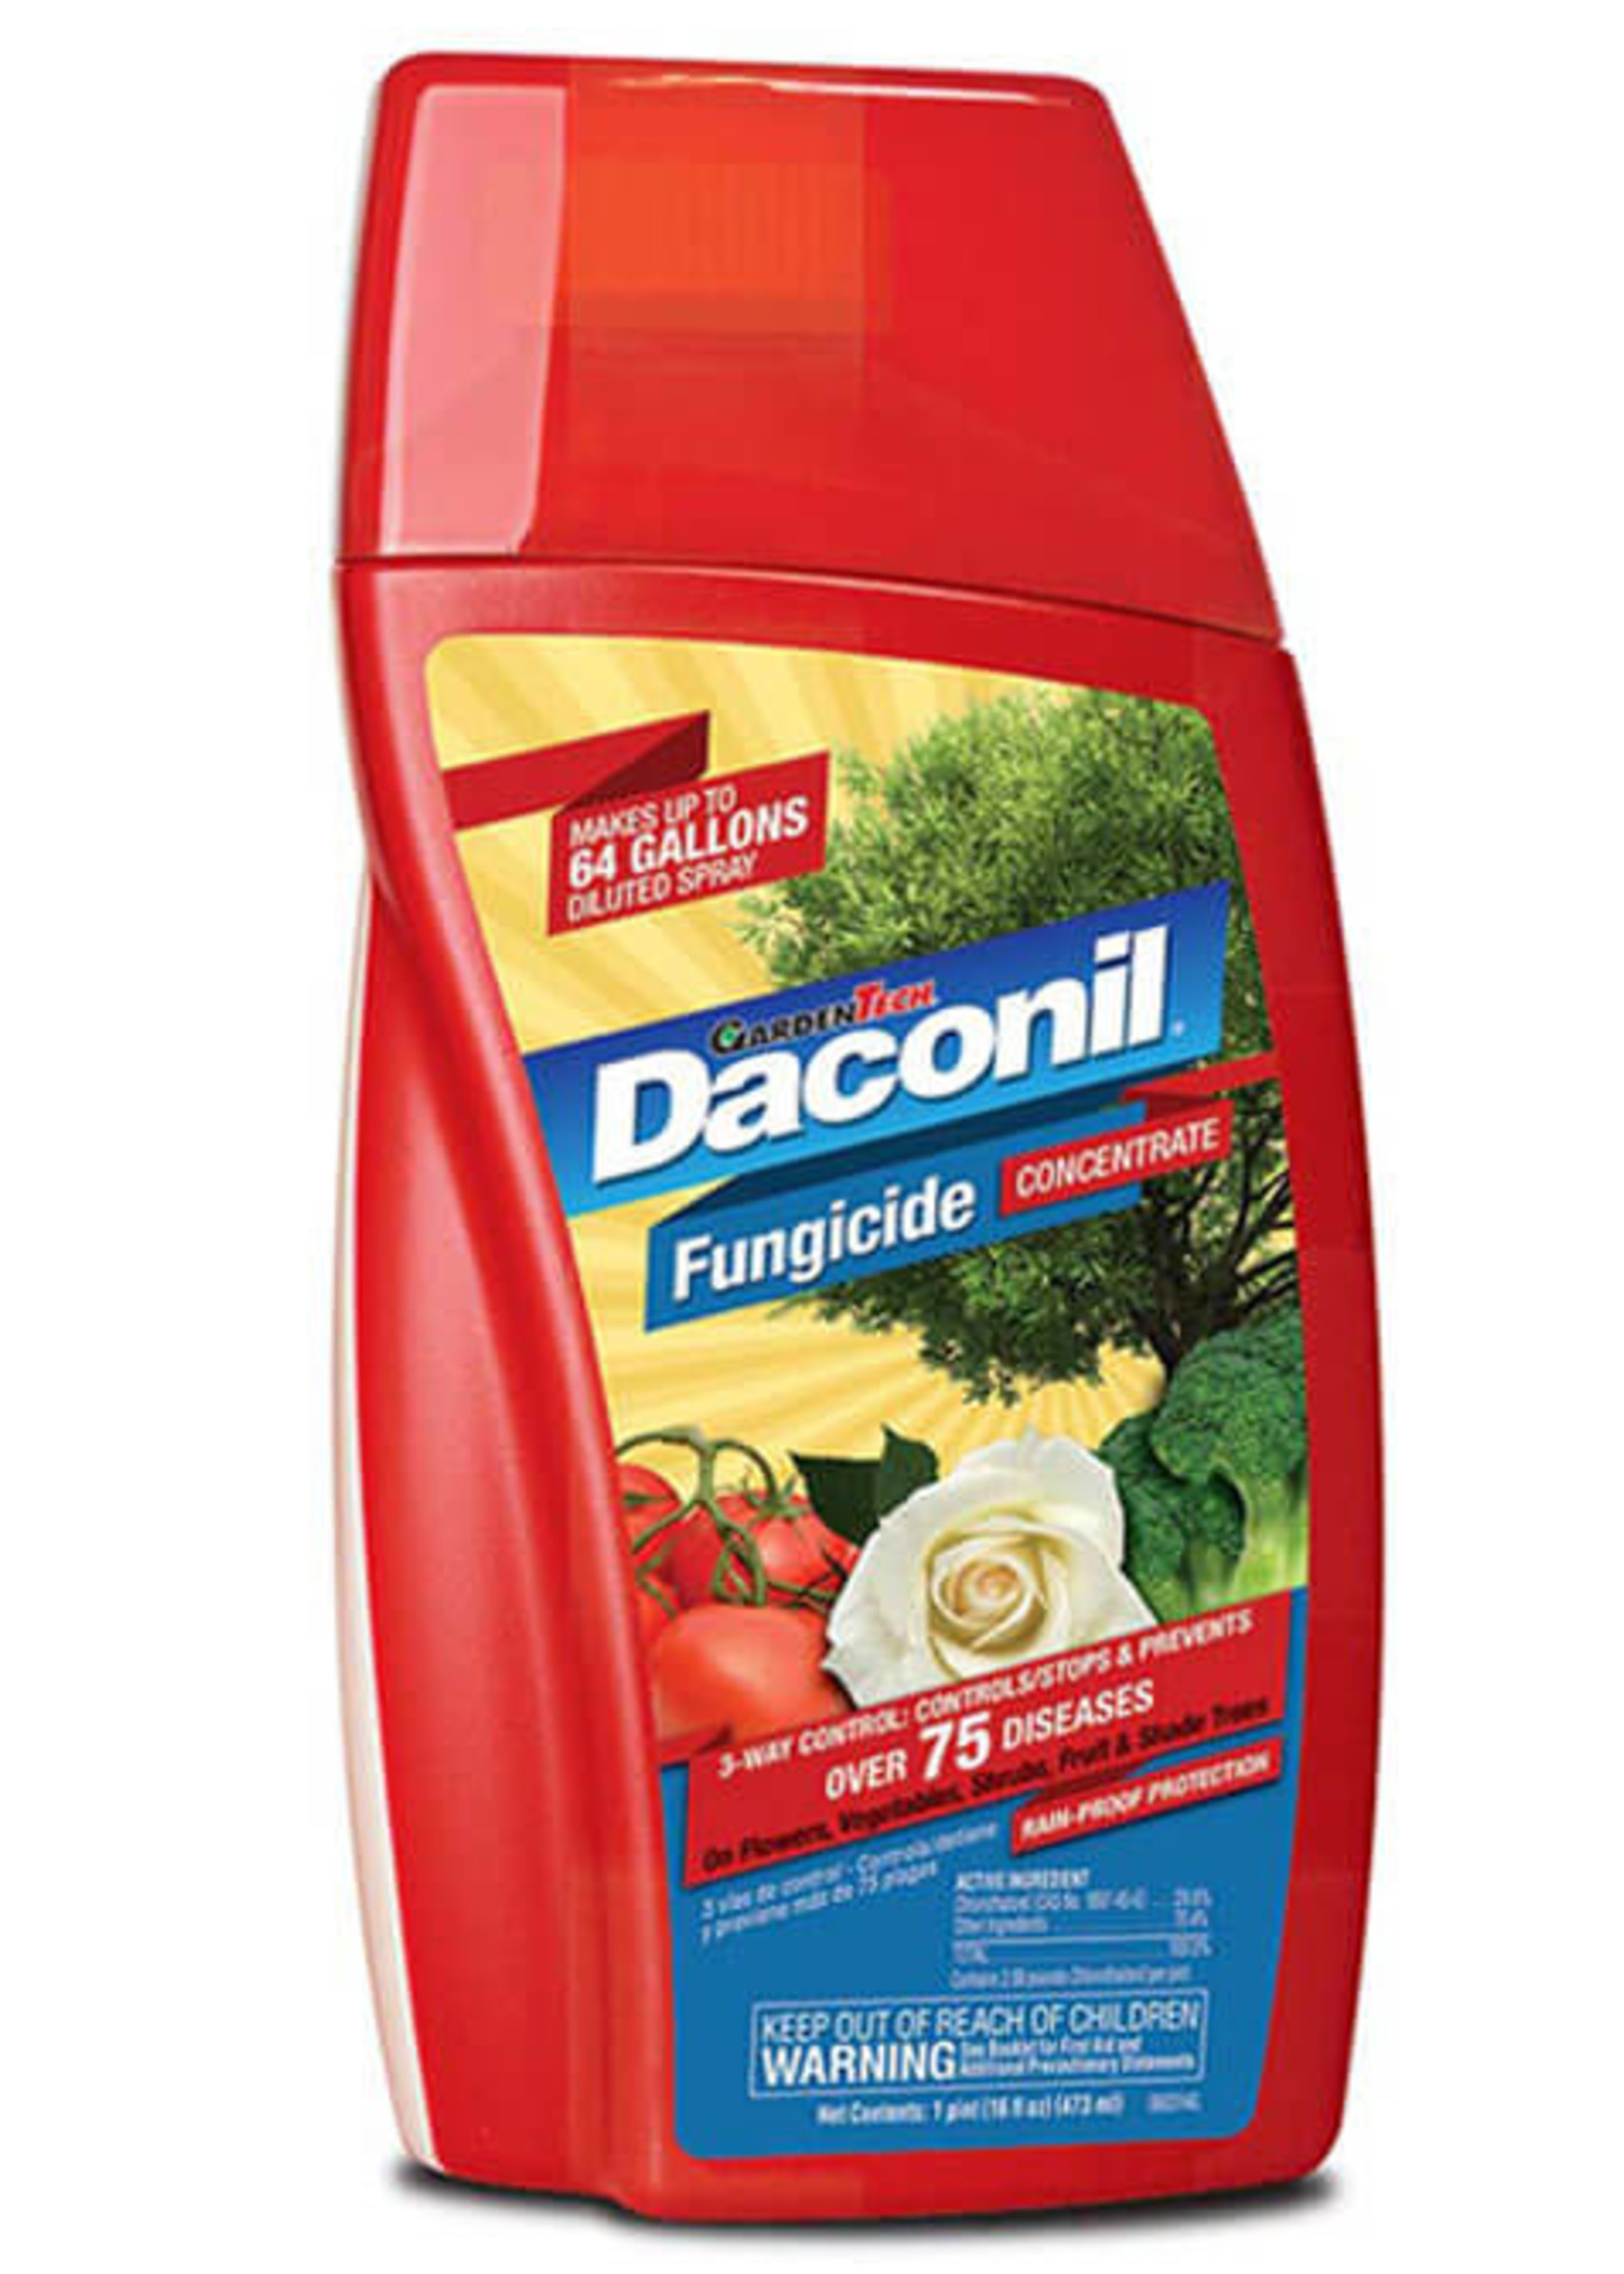 Daconil Concentrate 1 pt.